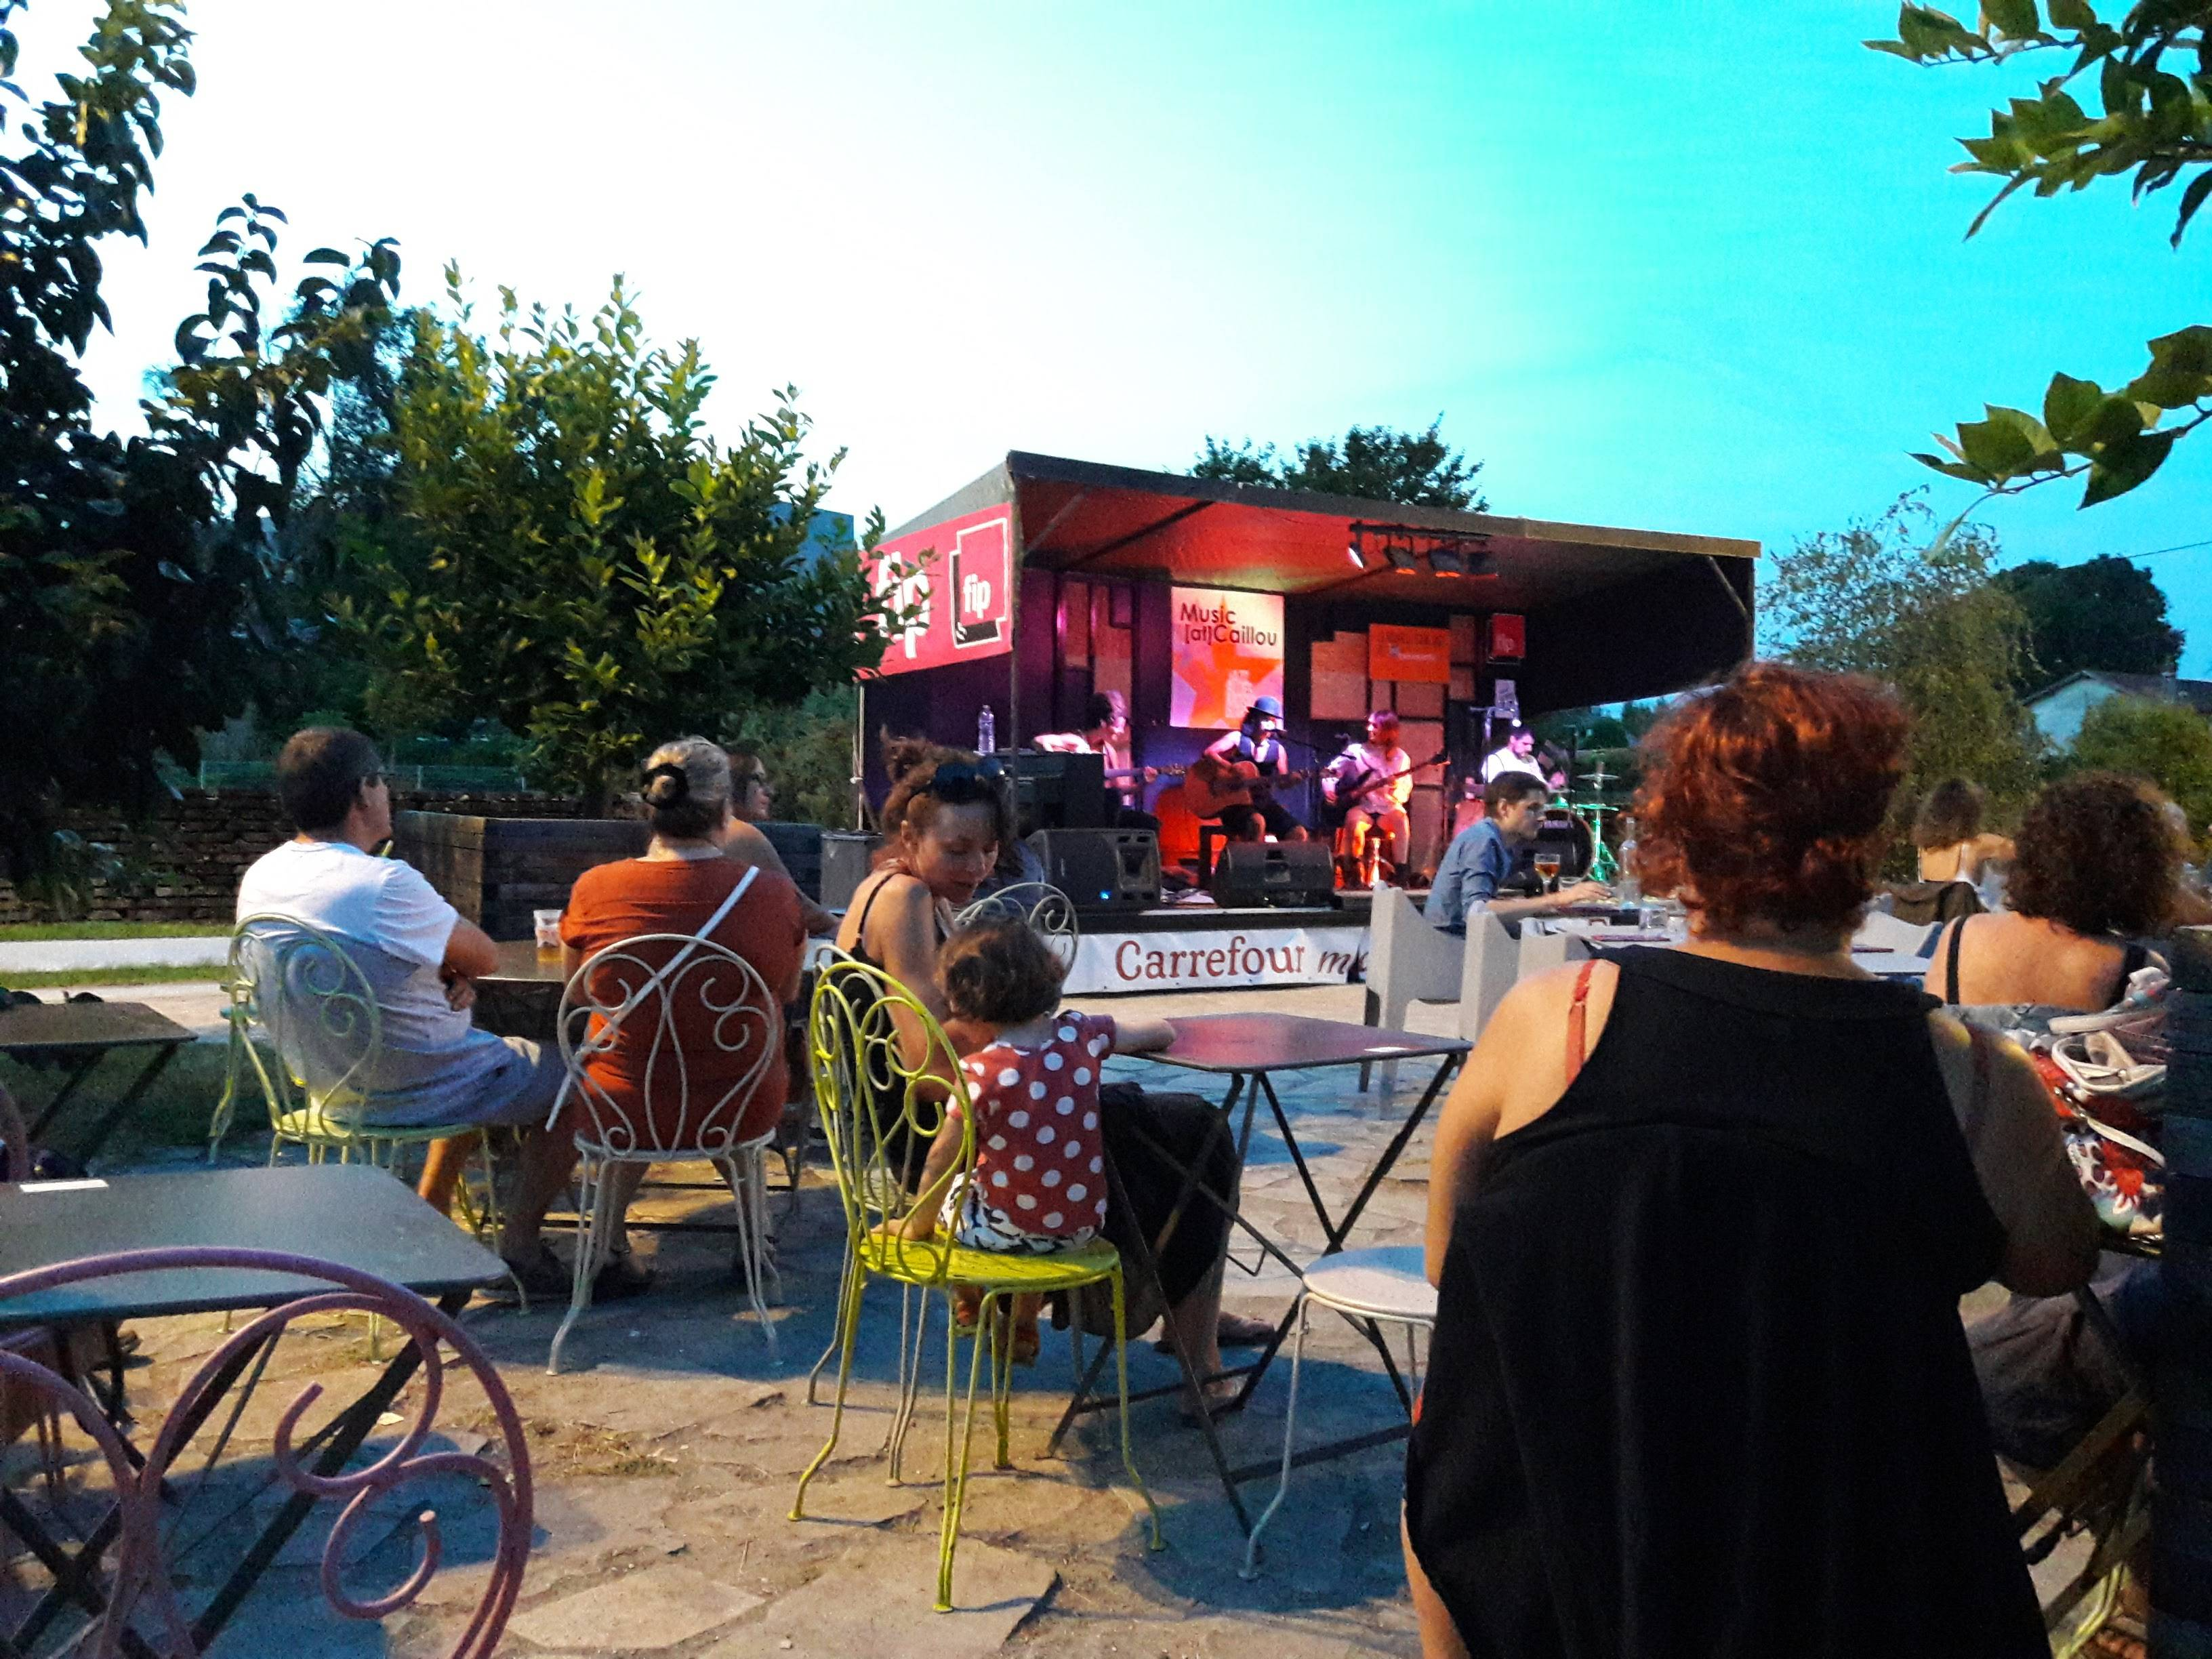 Photo 1: Music at caillou Bordeaux bastide